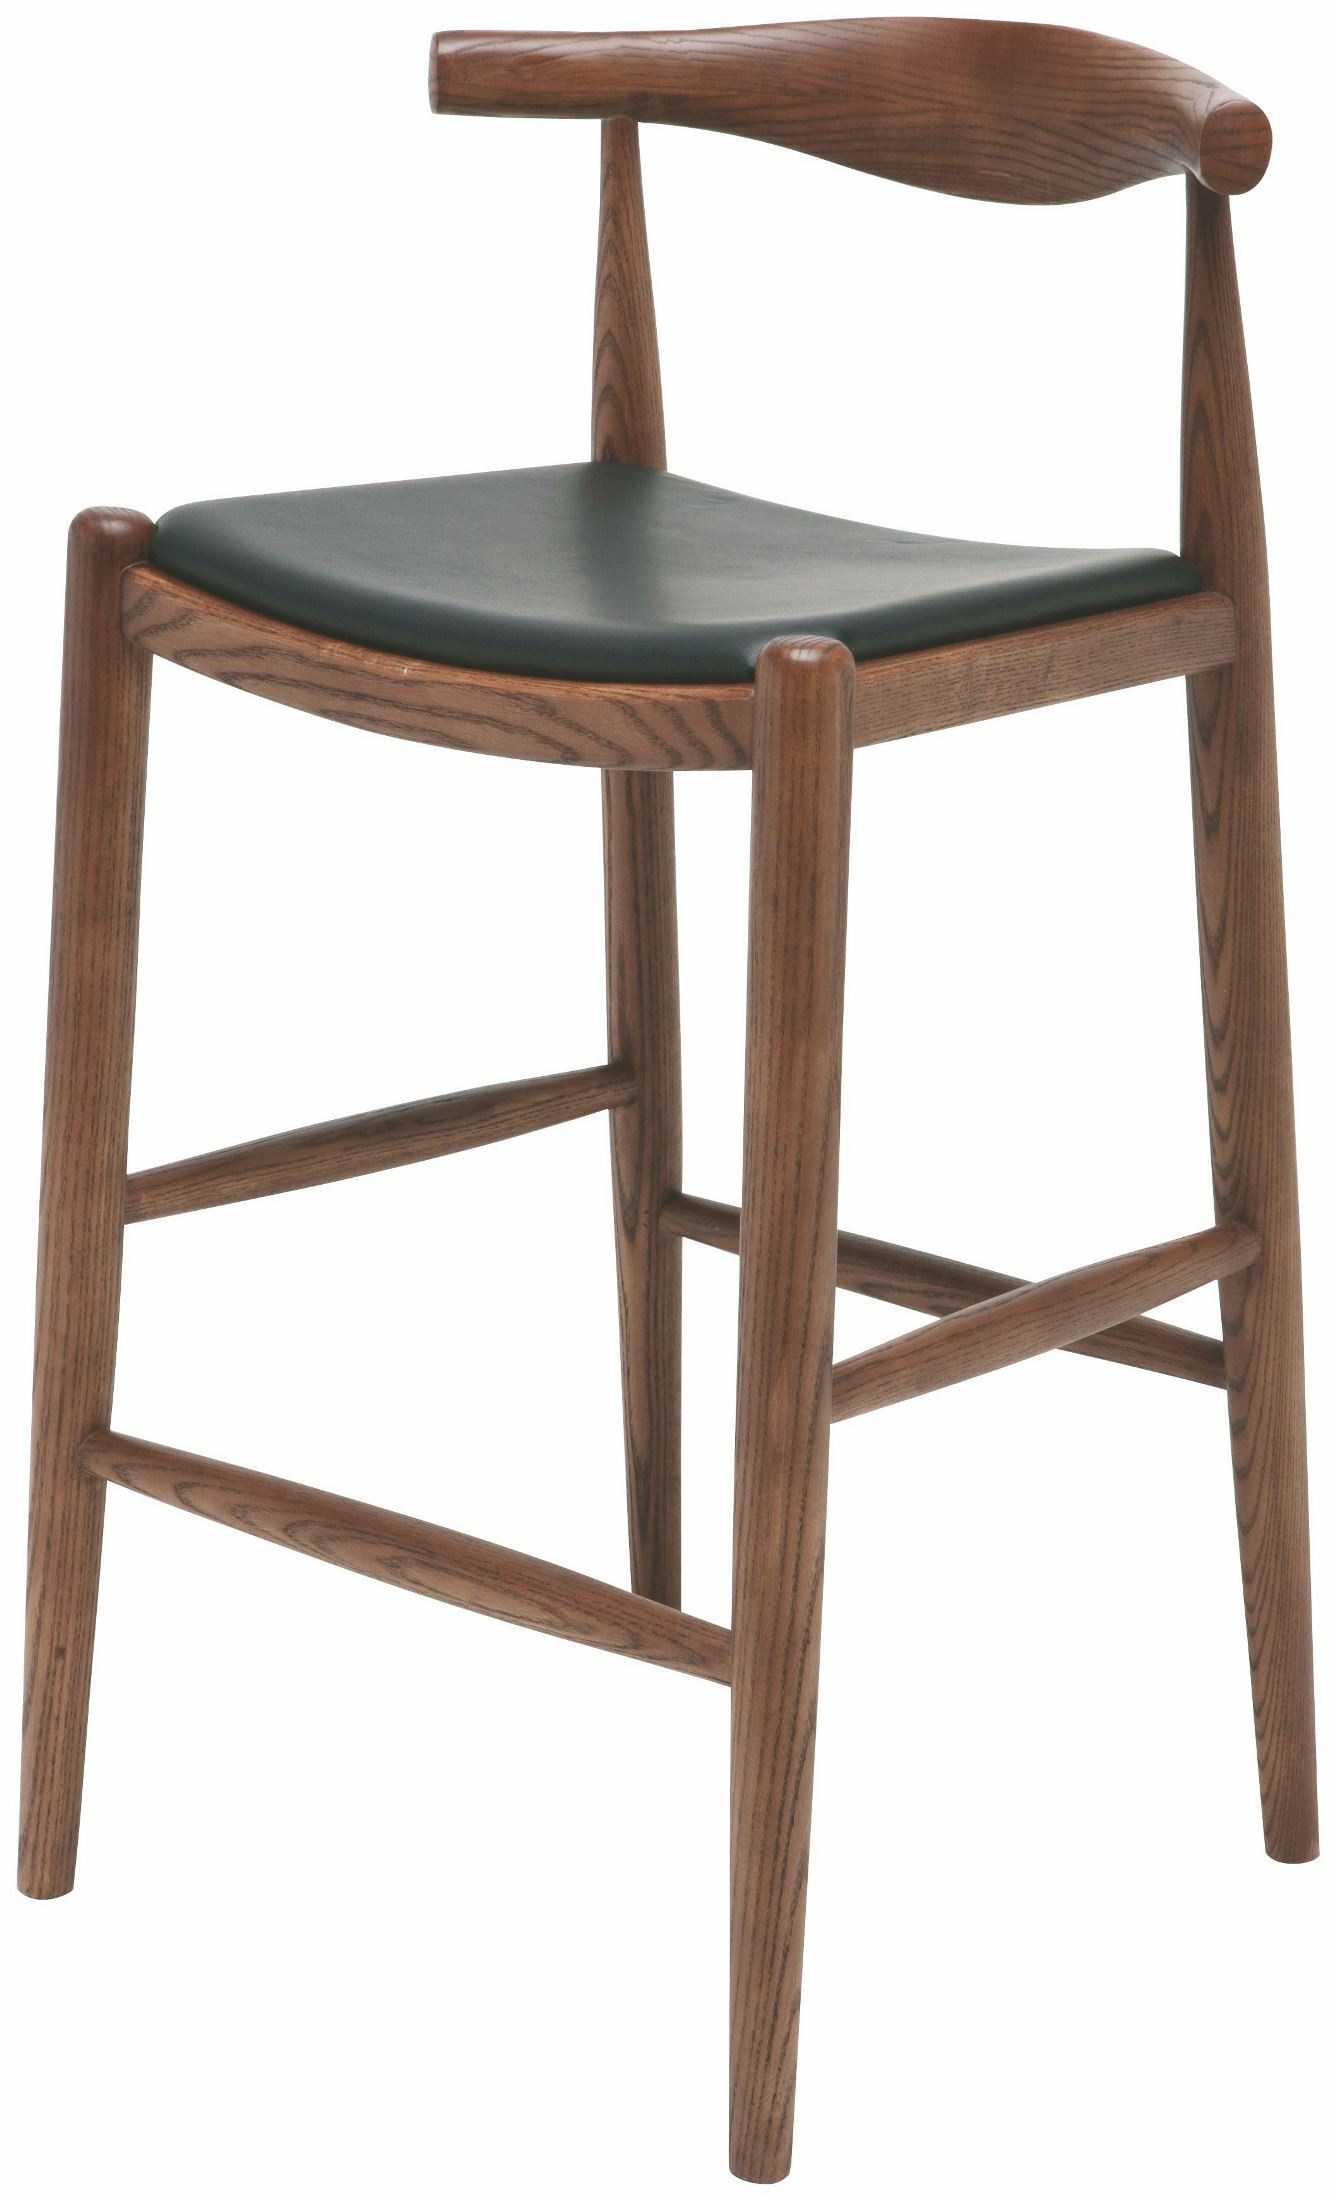 Maja Walnut Leather Counter Stool From Nuevo Coleman